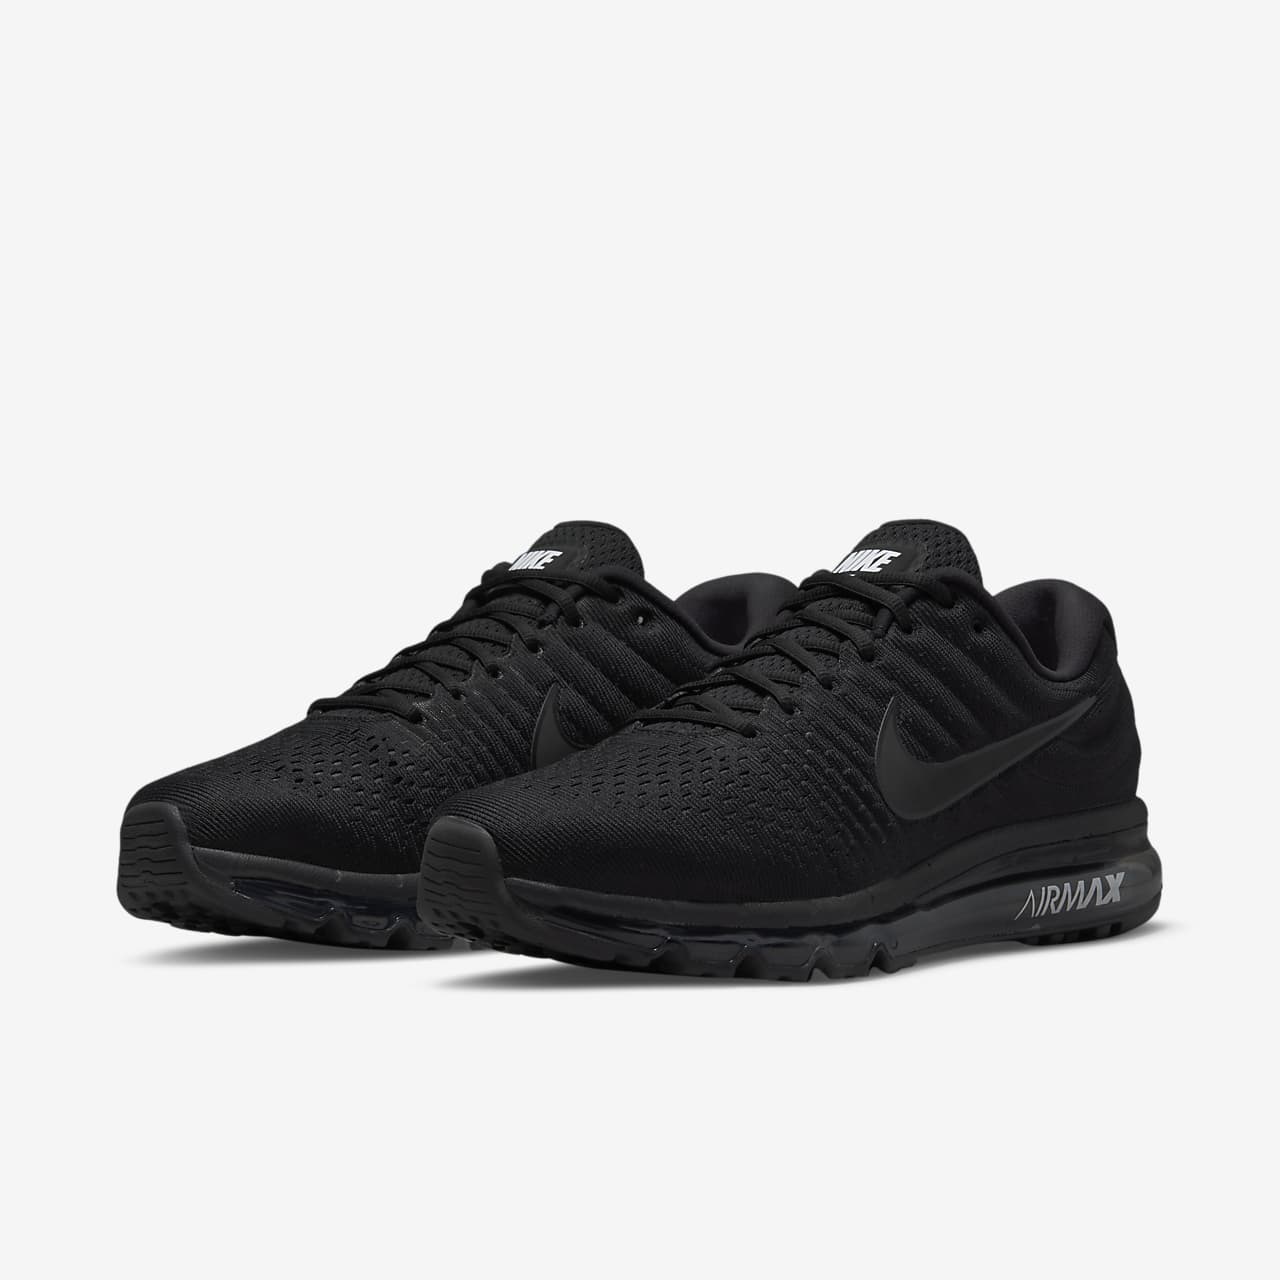 detailed look 6567c 0592e Chaussure de running Nike Air Max 2017 pour Homme Homme Nike 2017 Noir Rouge  ...